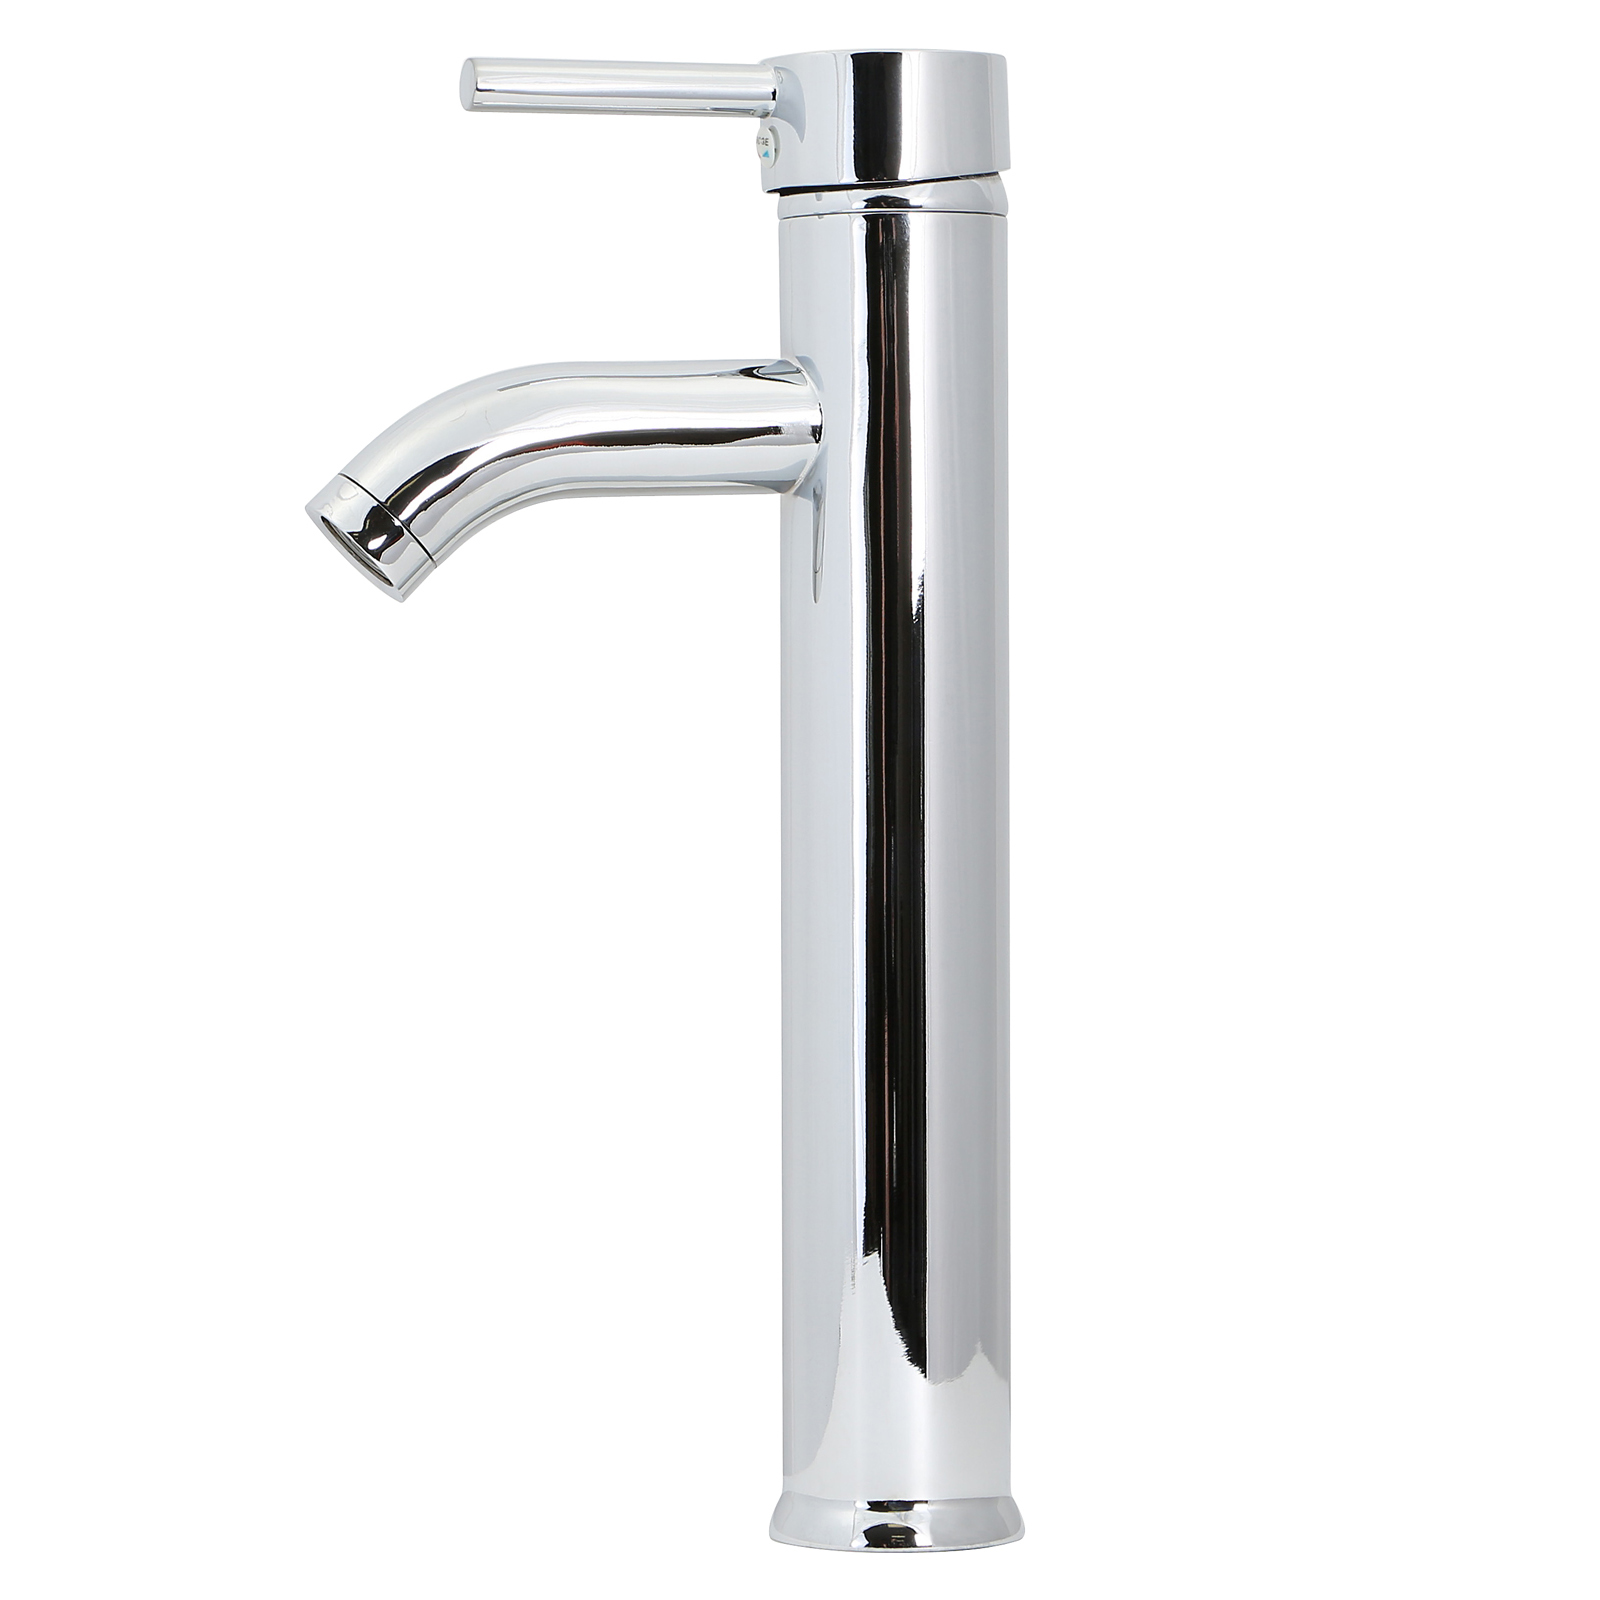 12quot Tall Bathroom Vessel Sink Faucet One Hole Handle